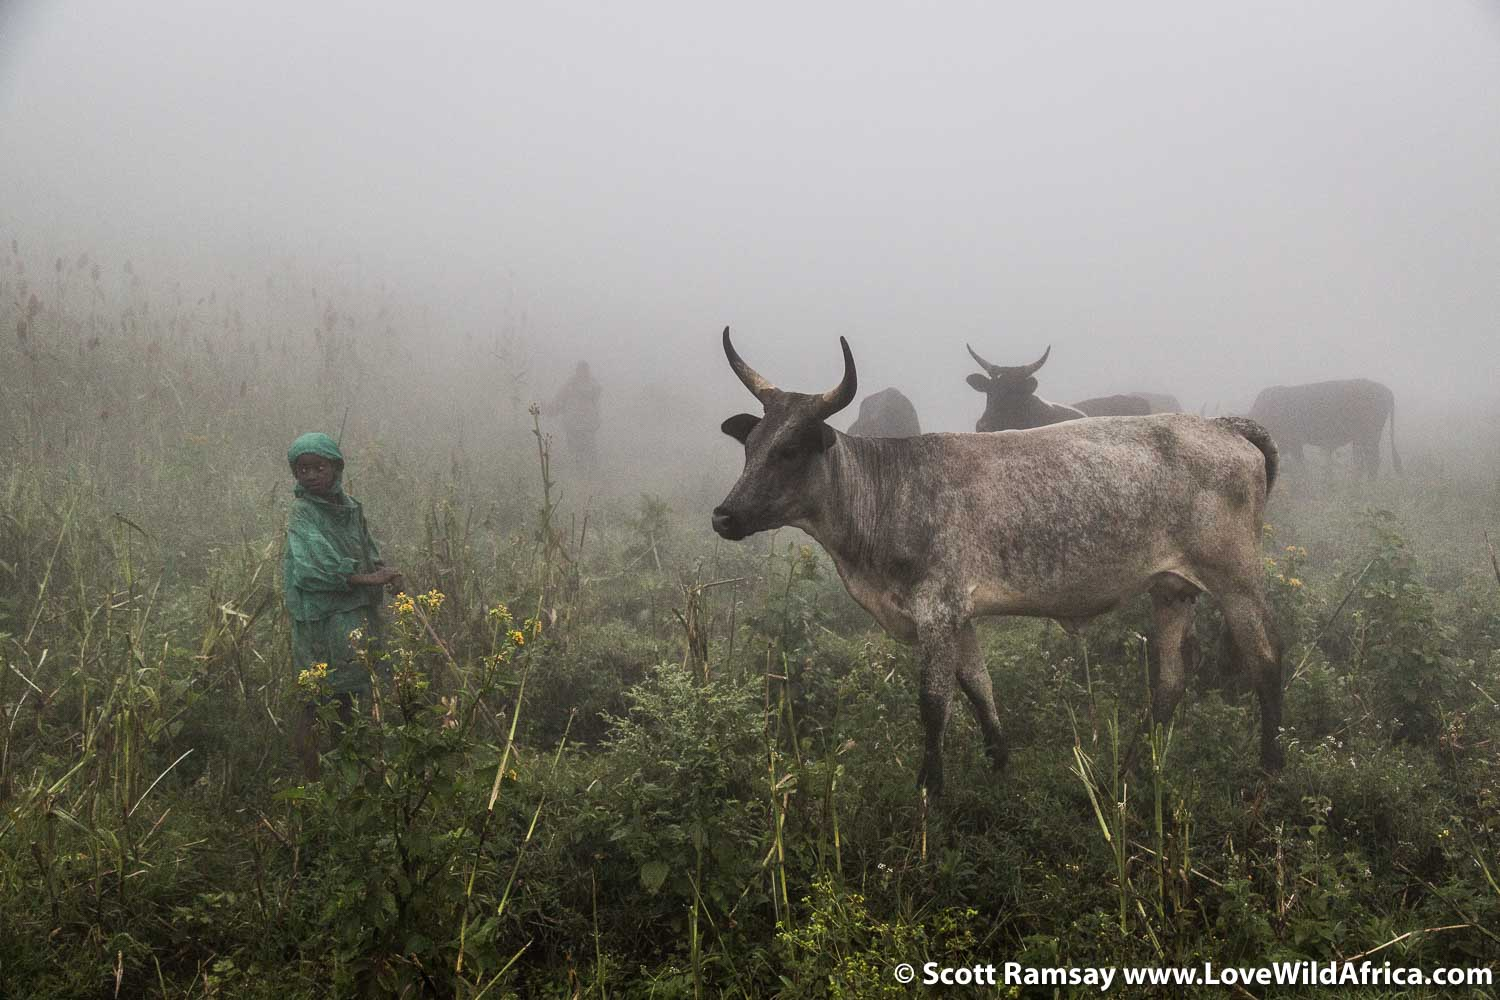 Virunga National Park is surrounded by agricultural land and several hundred villages and towns. Olivier Sadiki and his herd of cattle near Bukima Ranger post, just a few hundred metres from the forest of the mountain gorillas.